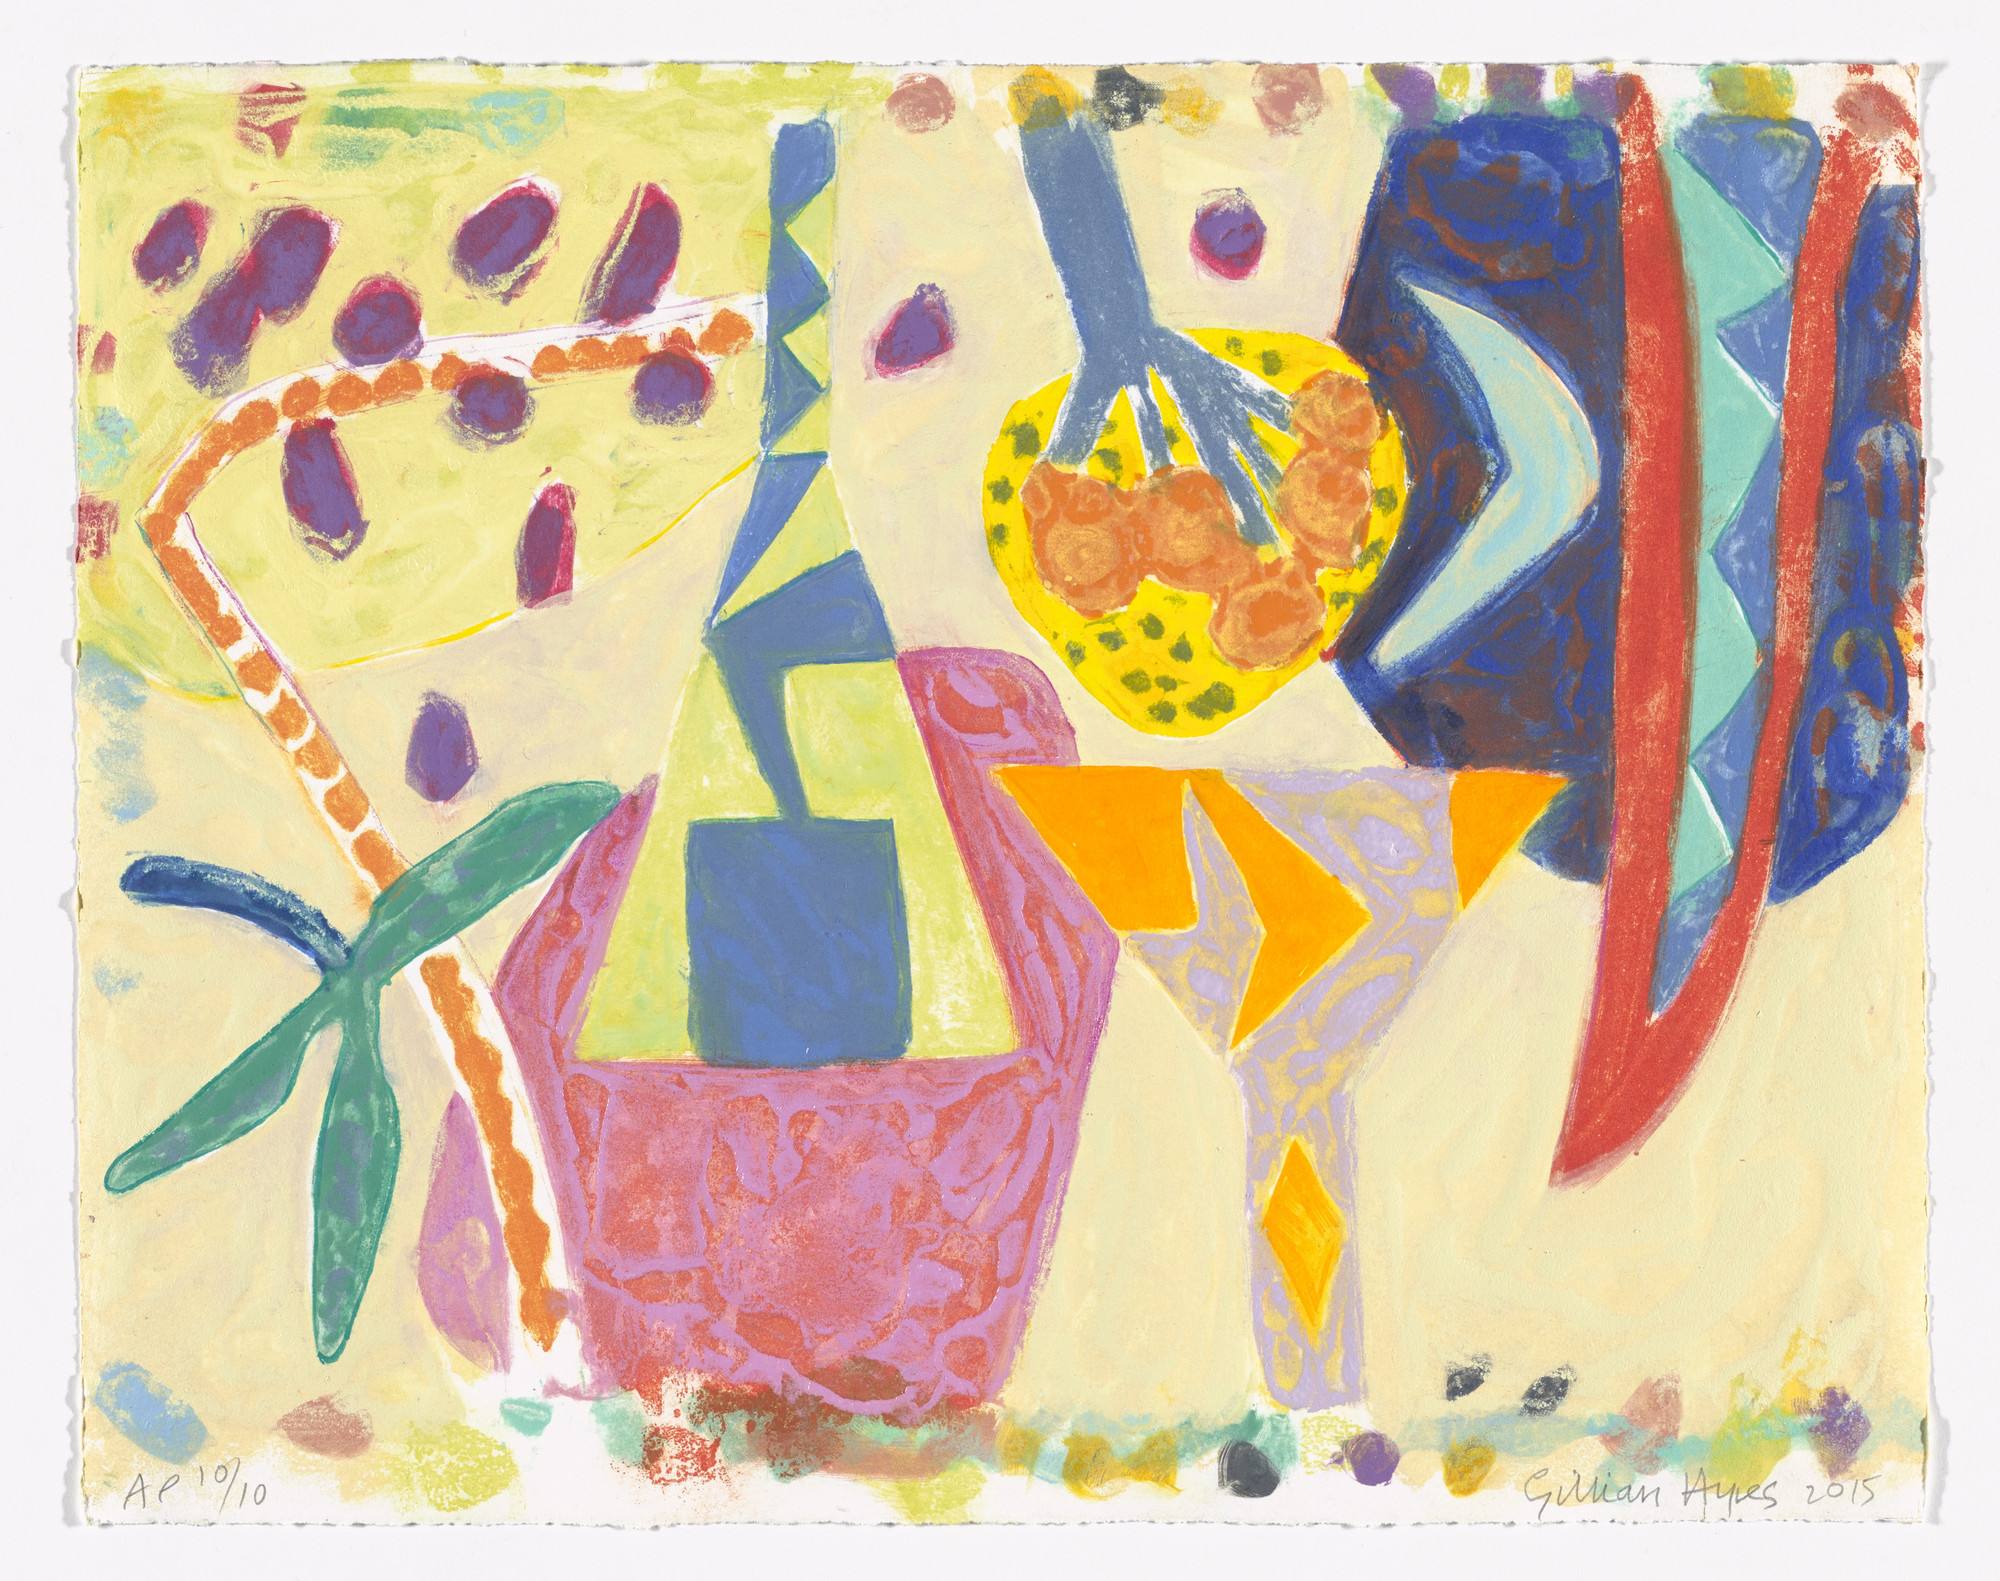 Gillian Ayres. For Alan from Alan Cristea Gallery Twentieth Anniversary Portfolio. 2015